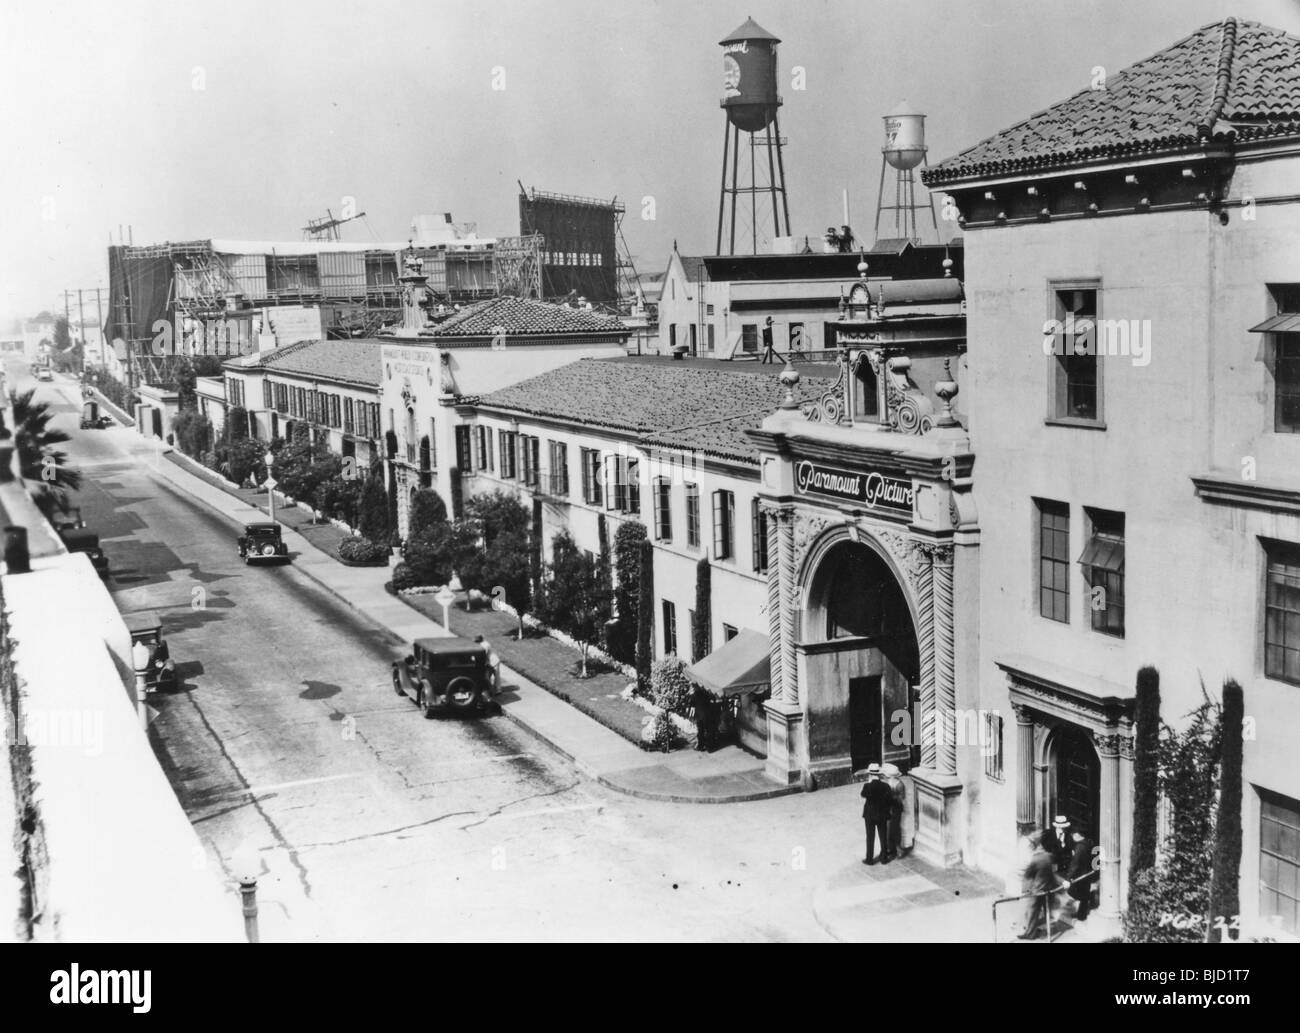 PARAMOUNT STUDIOS at 5451 Marathon in Hollywood in late 1920s - Stock Image